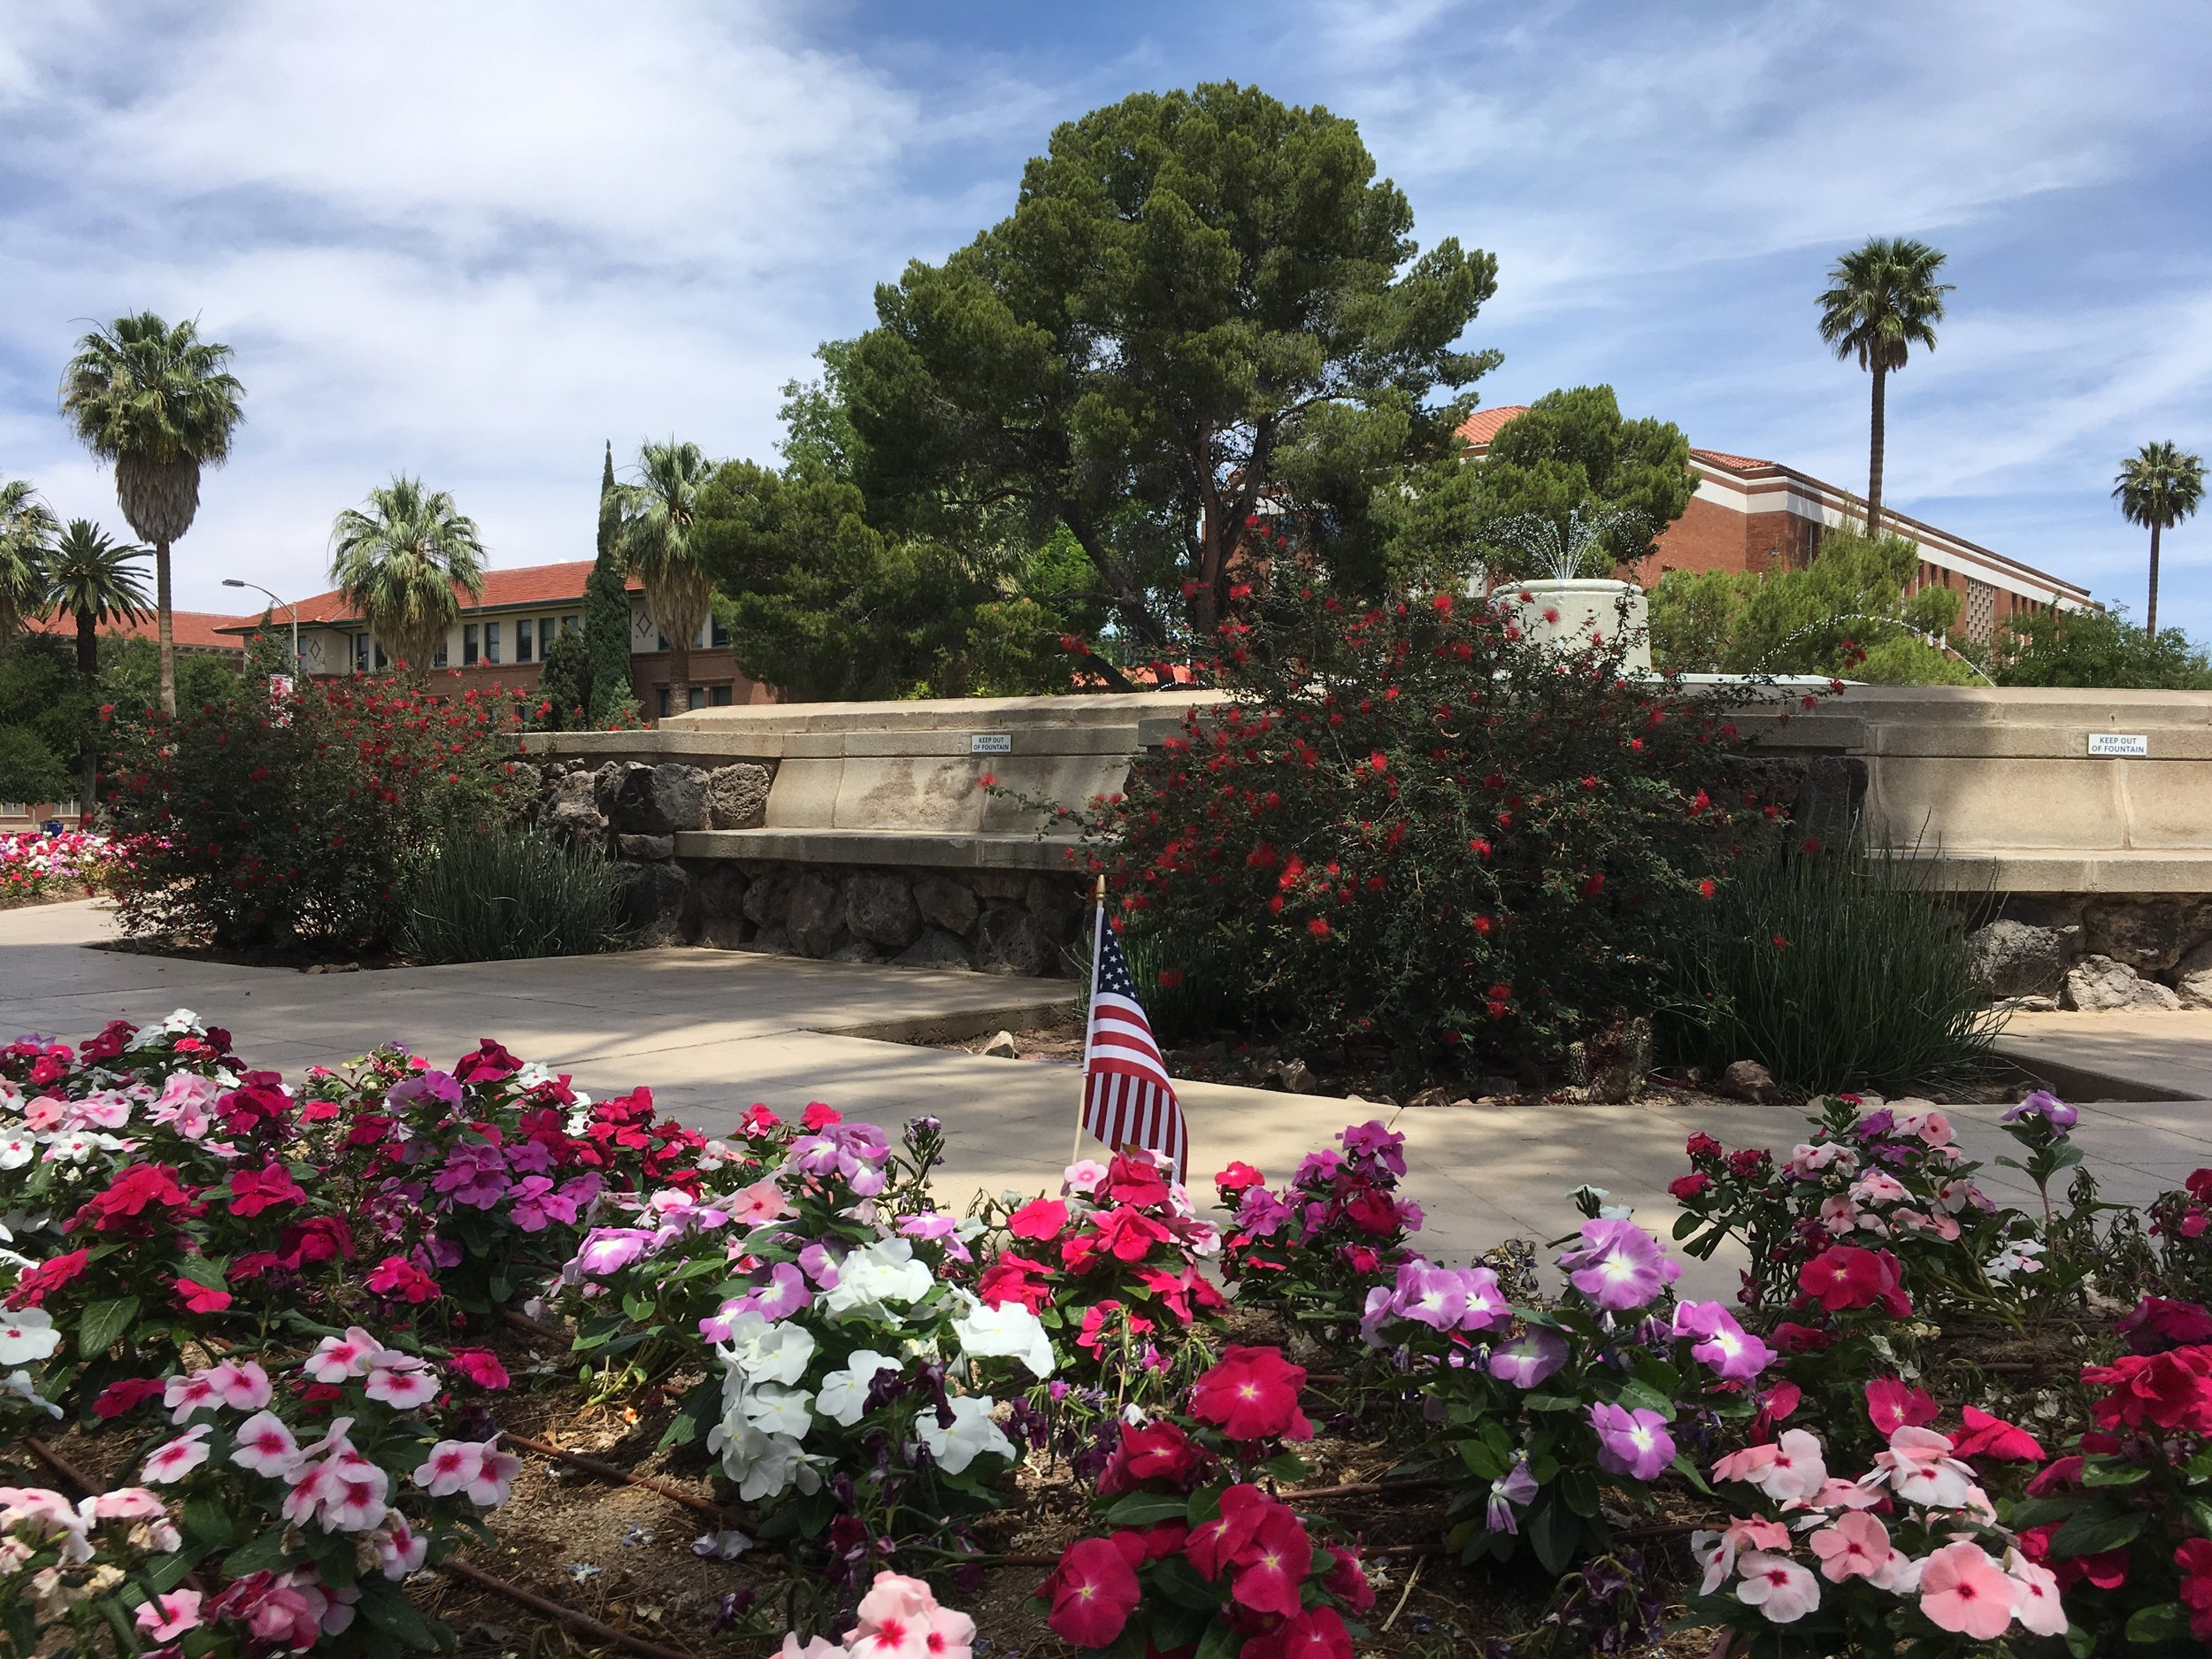 When I visited the memorial fountain at Old Main today, I was pleased to see several small flags around the perimeter. I believe UA students who died in the war are also honored on a plaque in the basement rotunda of the Student Union, but that space was locked today and I could not double check.